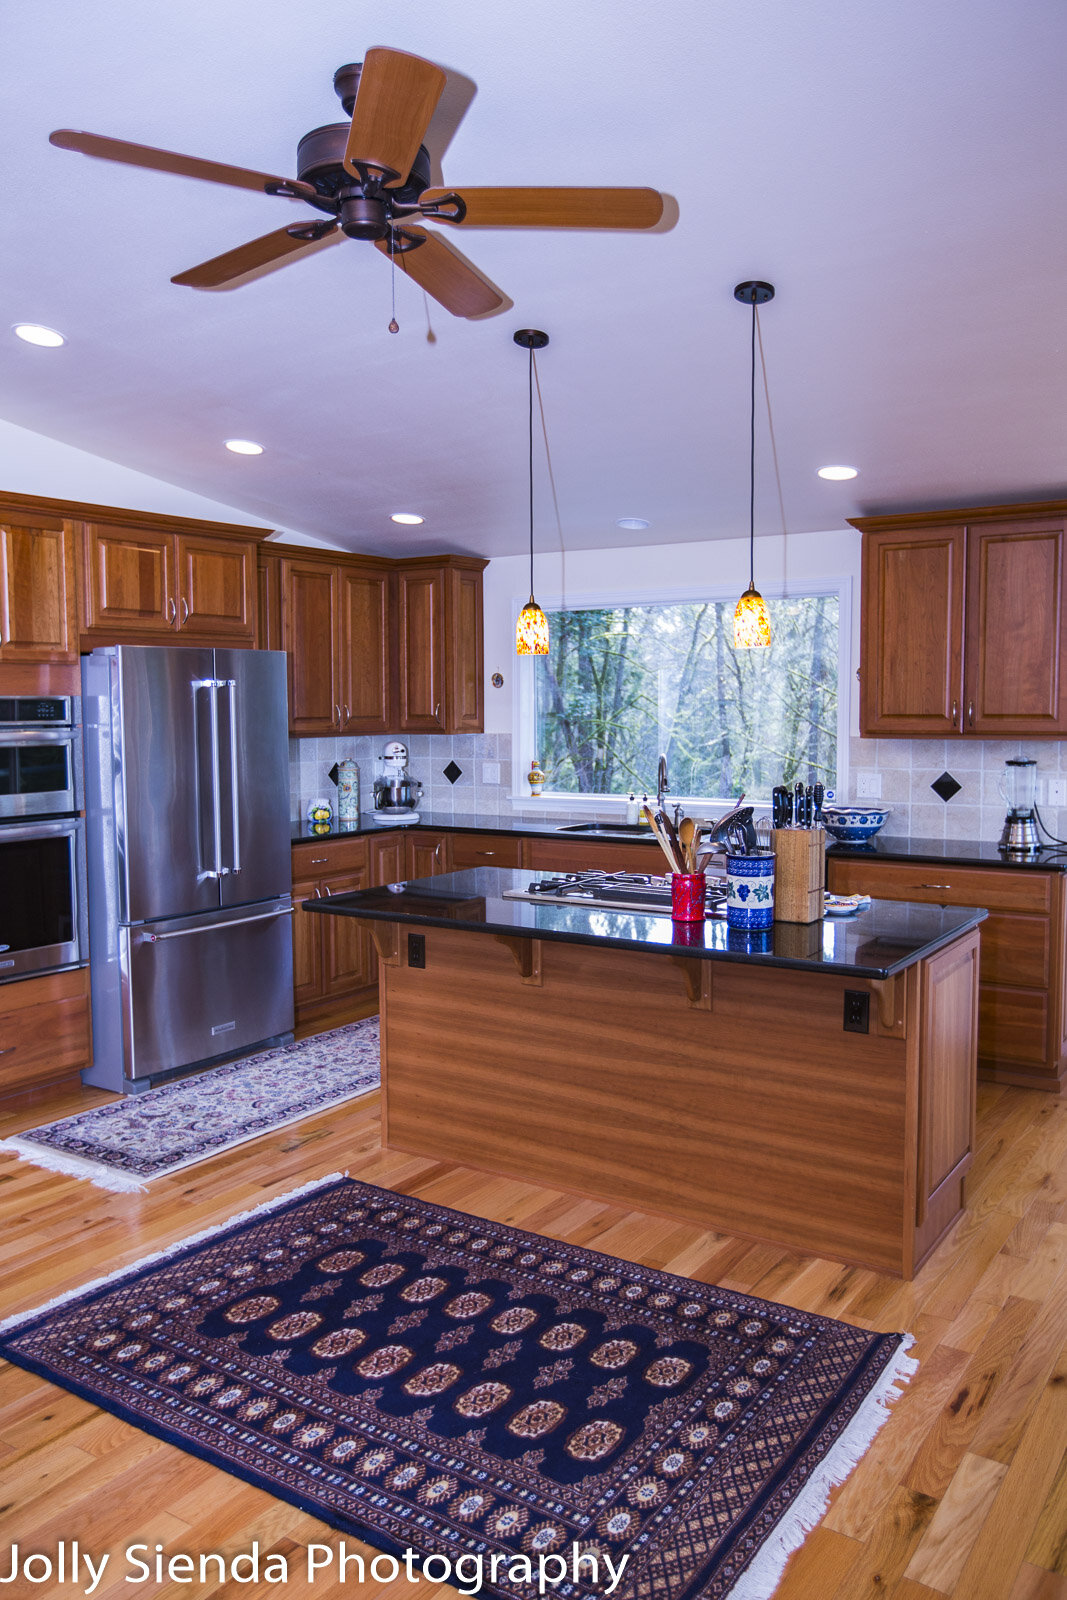 Residential real estate photography, gourmet kitchen